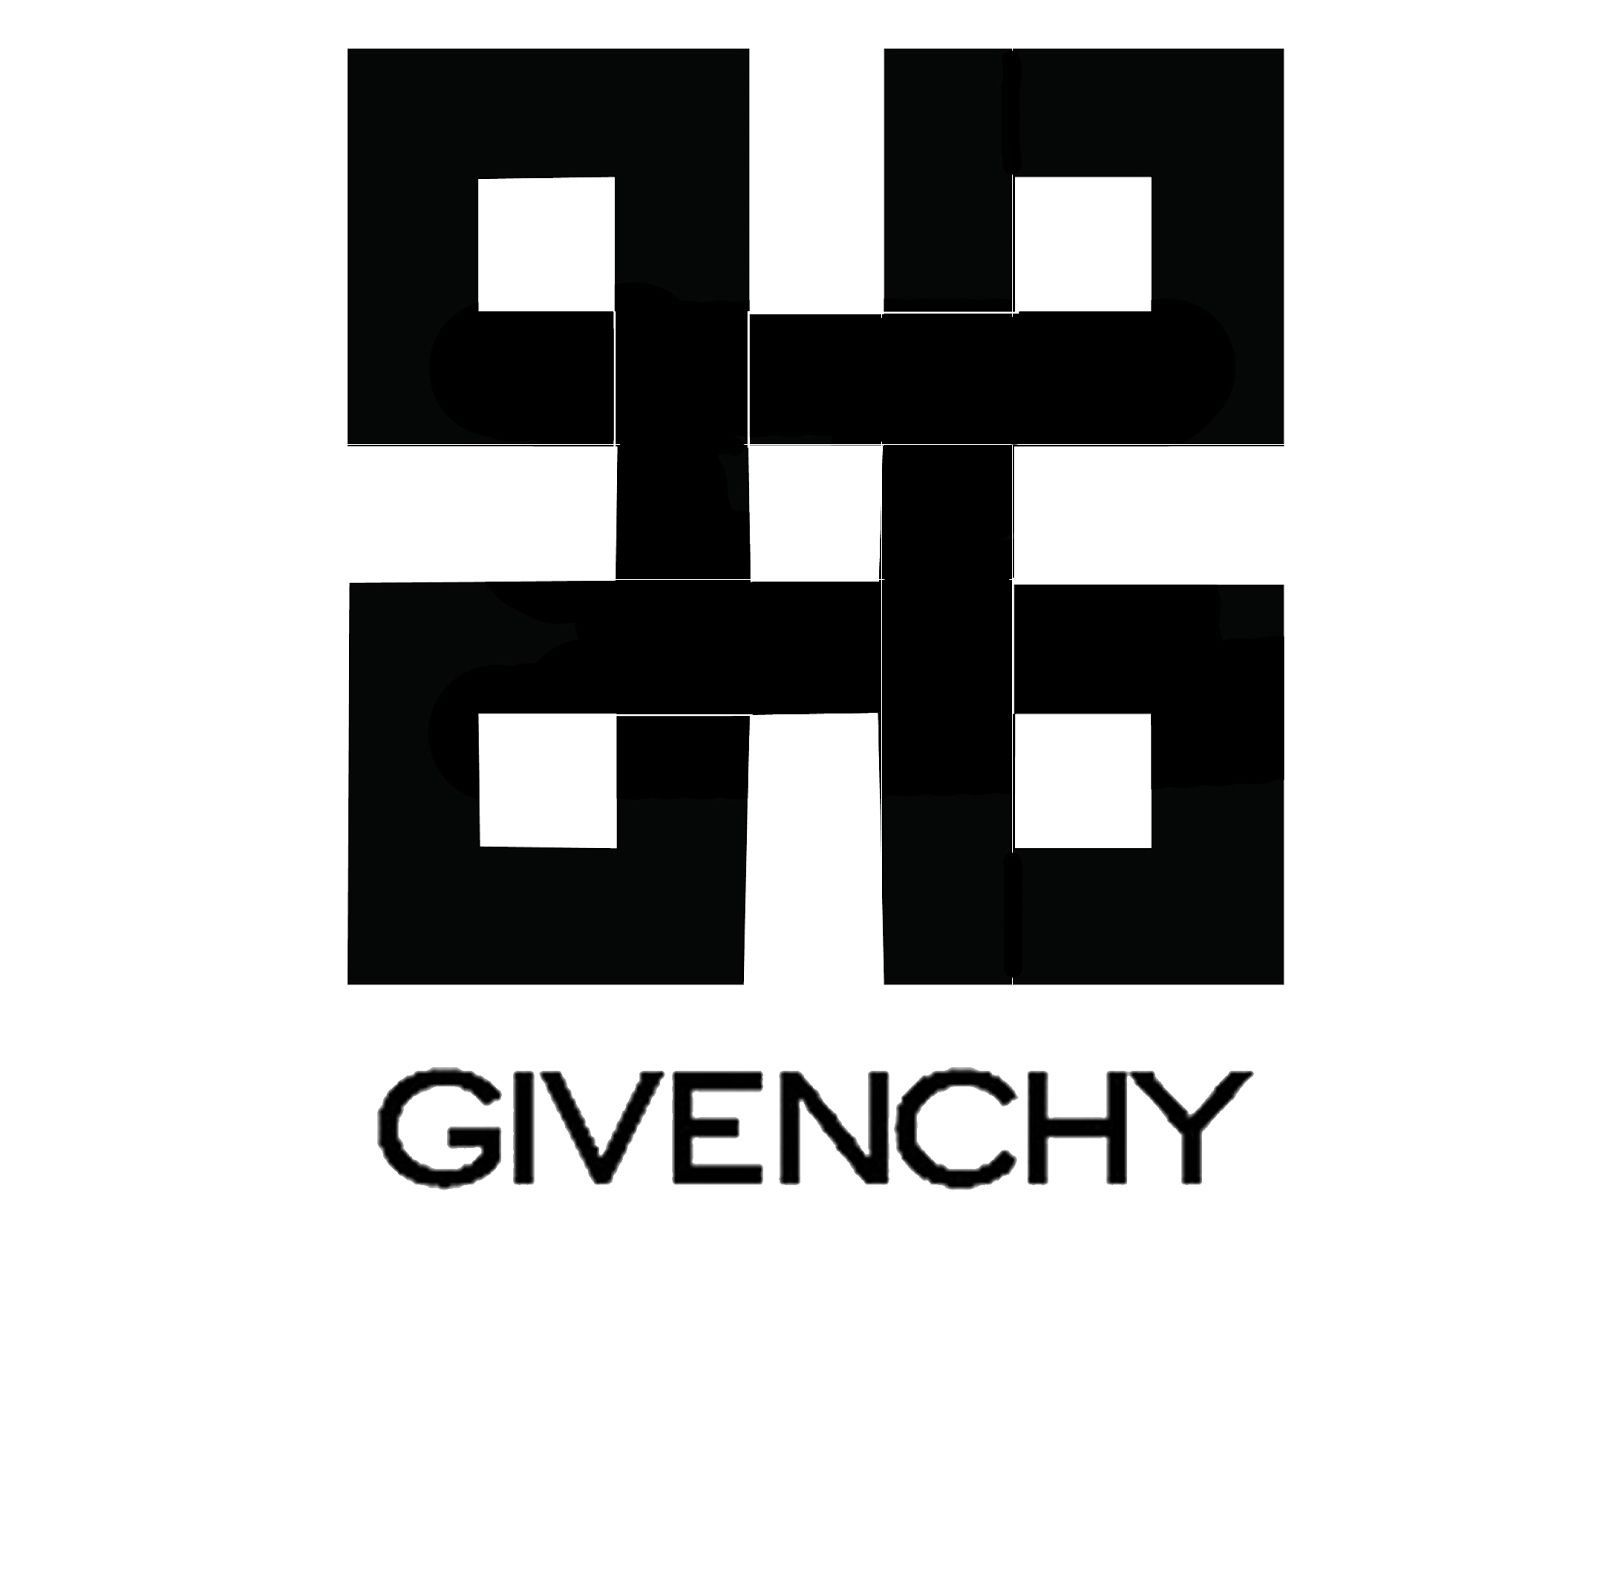 Givenchy Logo - Givenchy Logo | Advertising_Winter2013: Chinbayar Davaatseren, Final ...